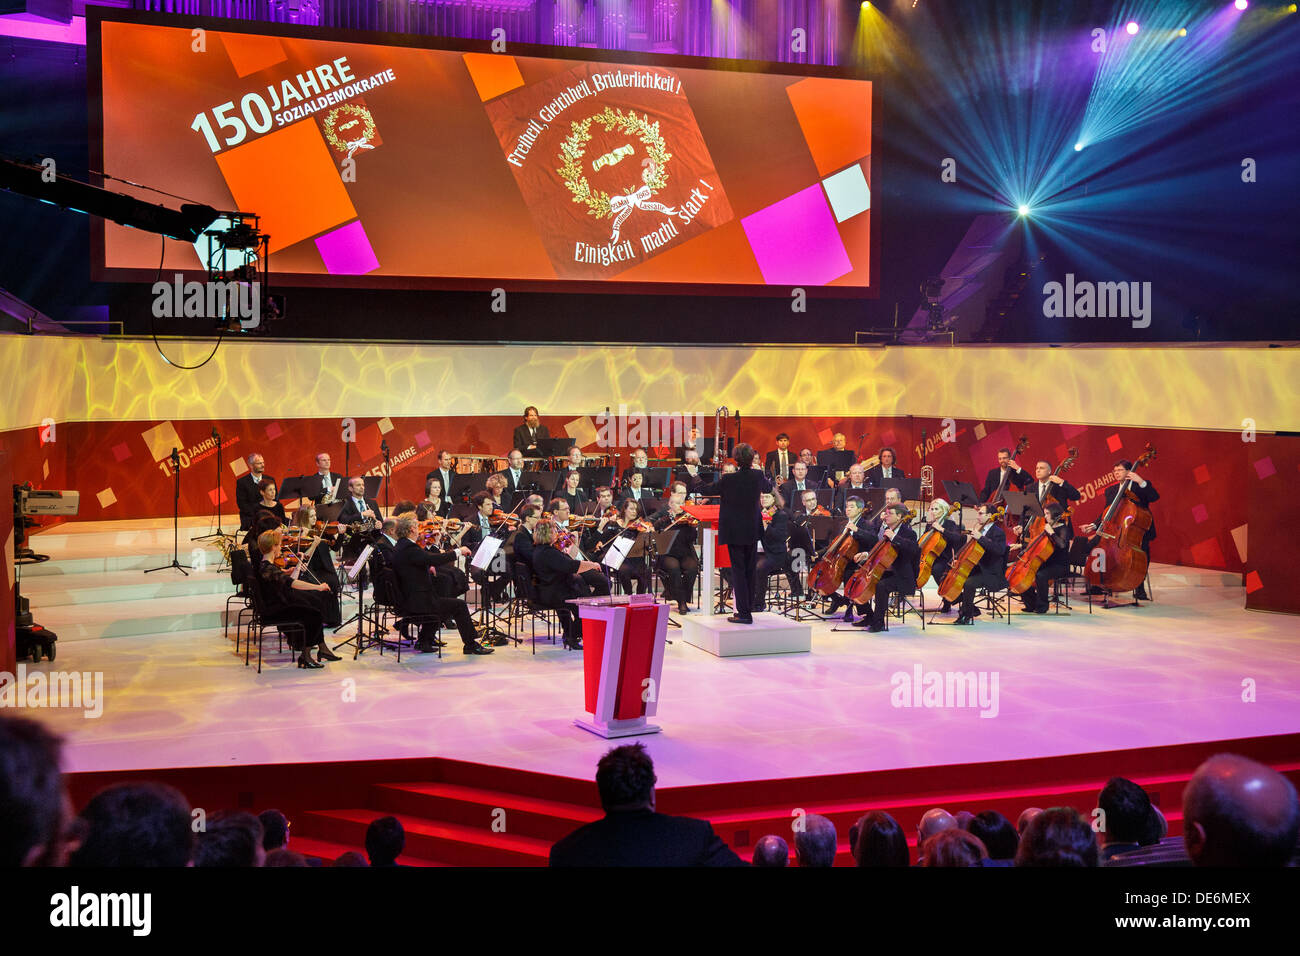 Leipzig, Germany, the Leipzig Gewandhaus orchestra plays in the ceremony 150 years SPD - Stock Image